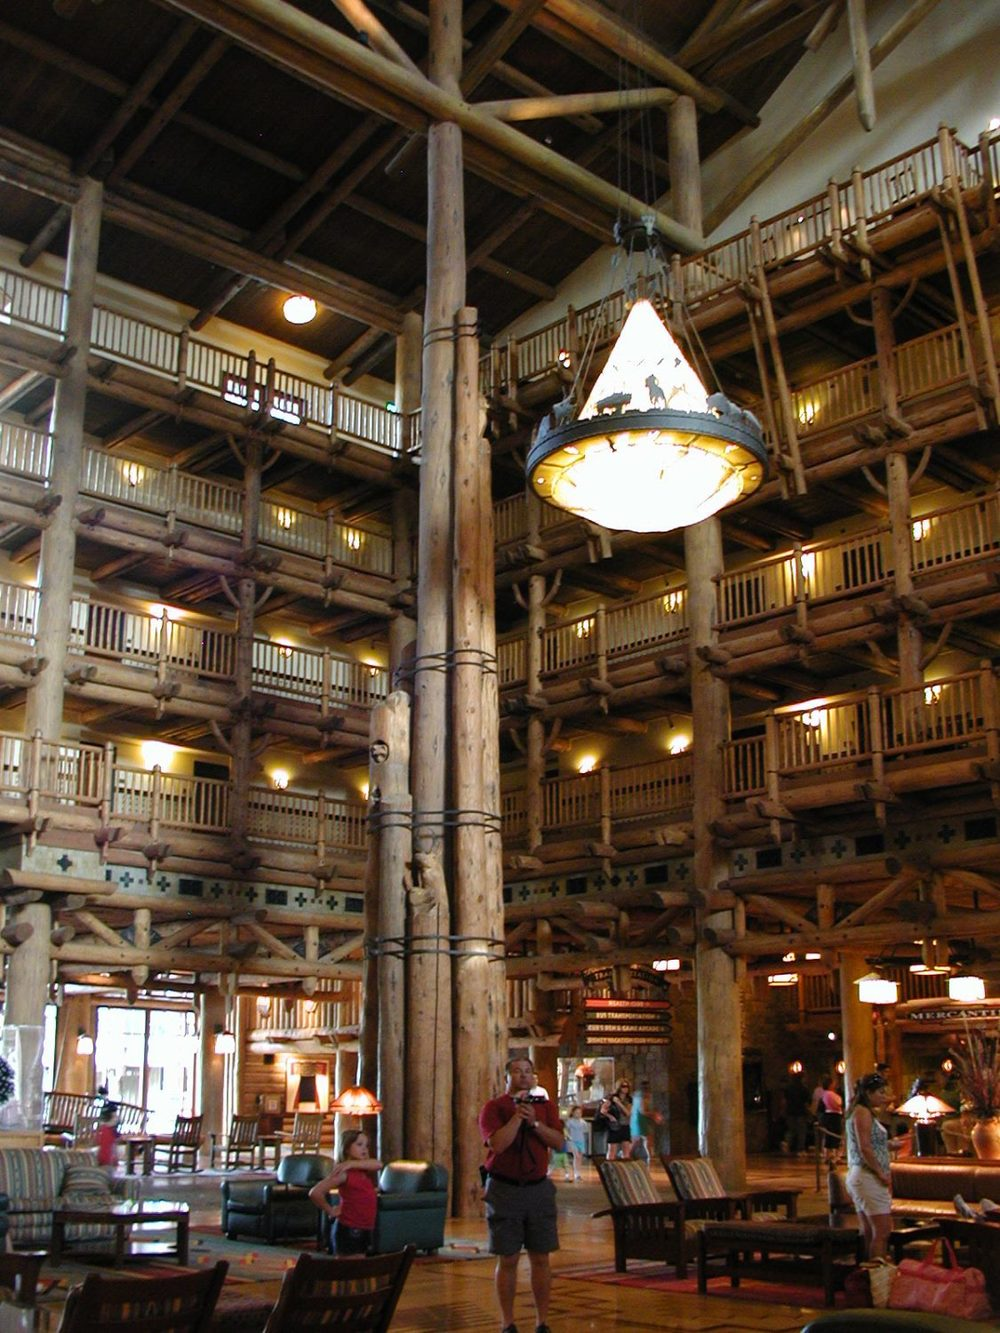 Log columns in the lobby of Disney's Wilderness Lodge at Disney World.